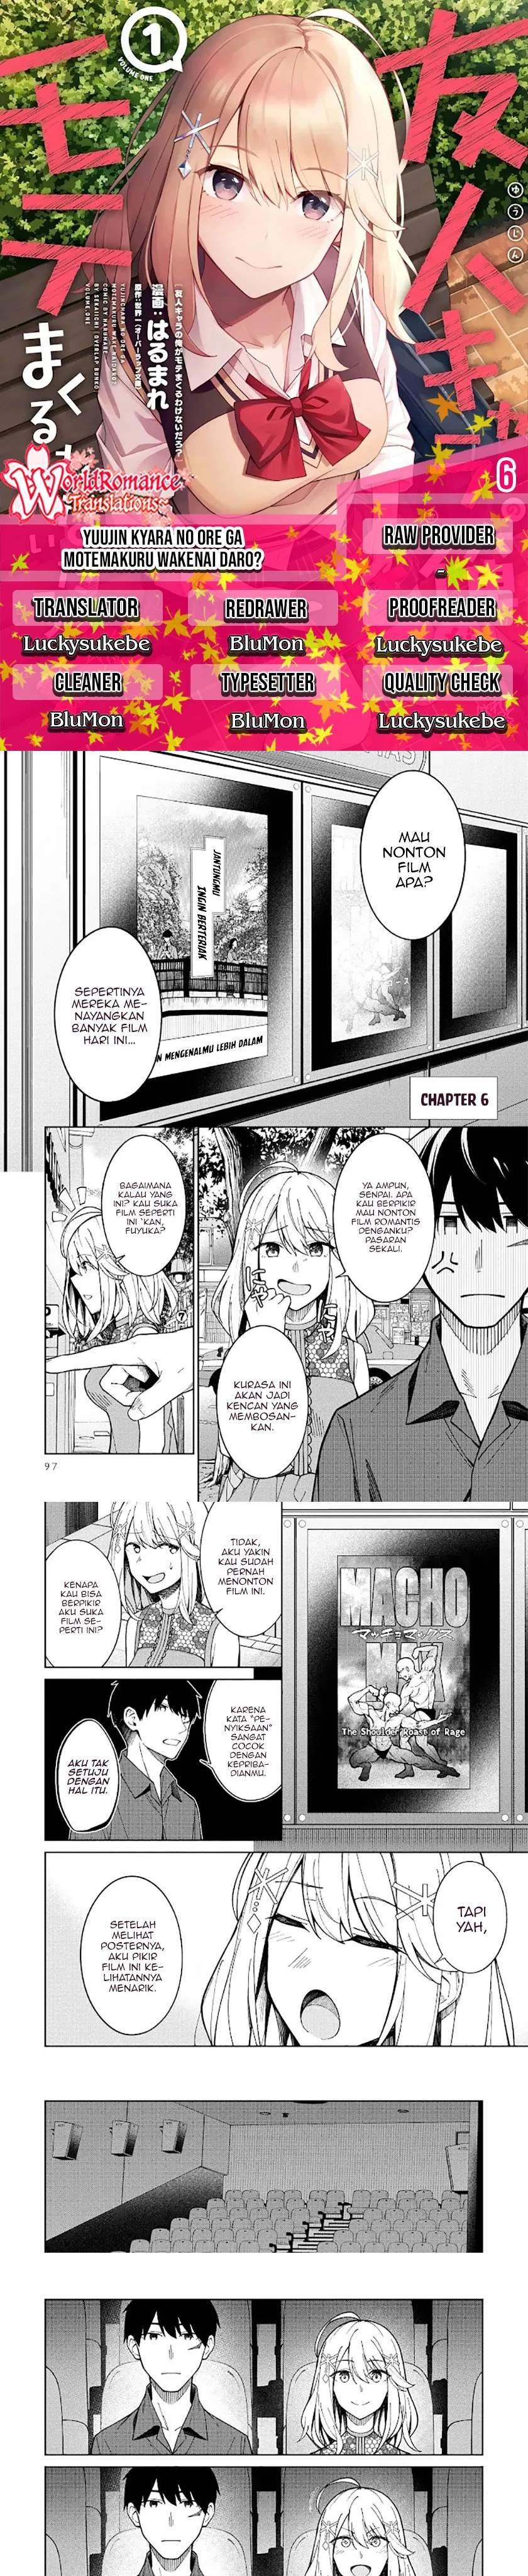 There's No Way A Side Character Like Me Could Be Populer, Right?! Chapter 06